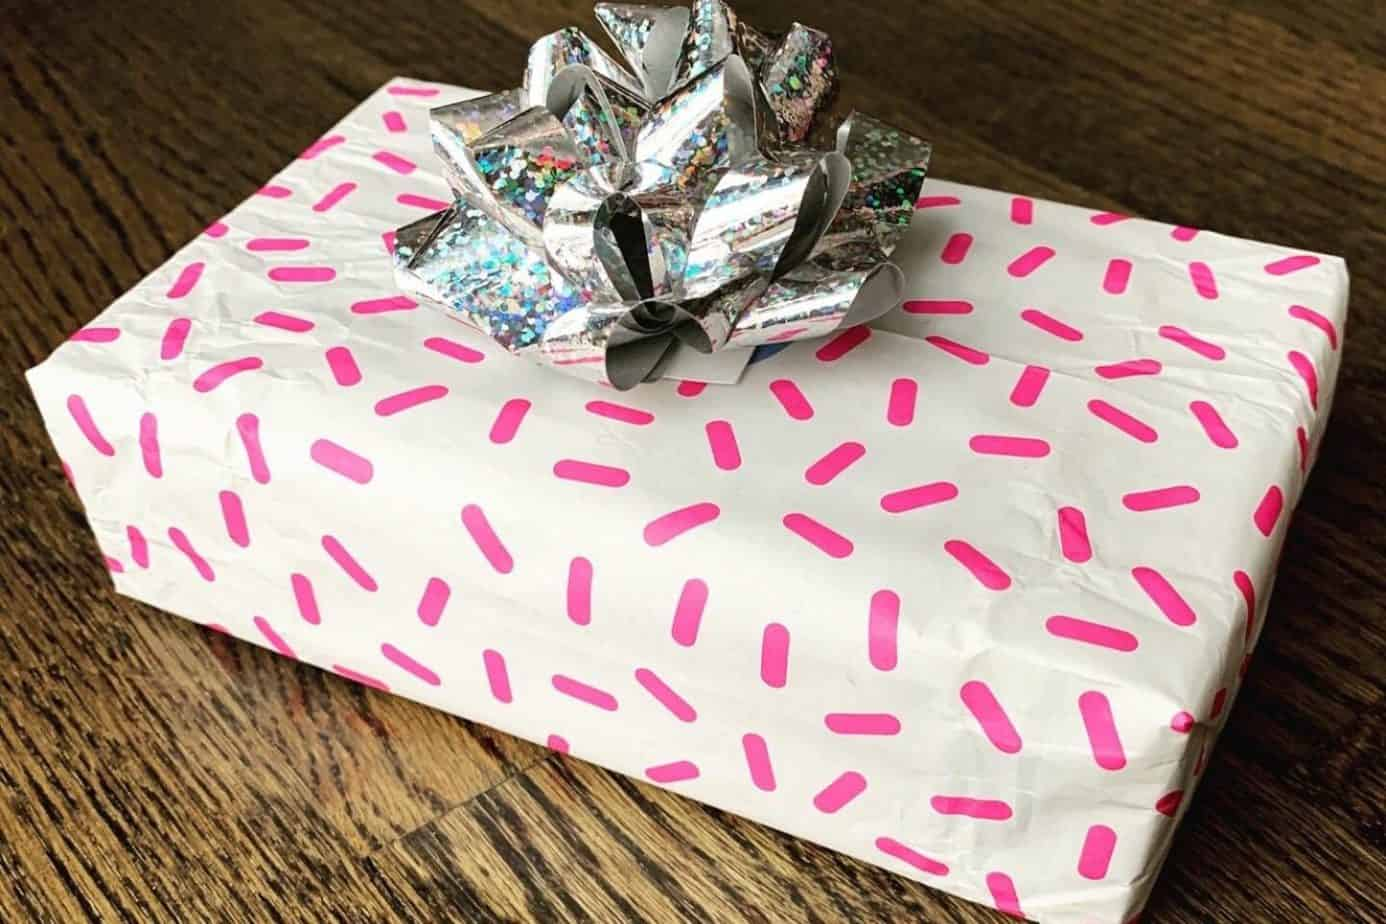 Who Gives a Crap upcycled wrapping paper